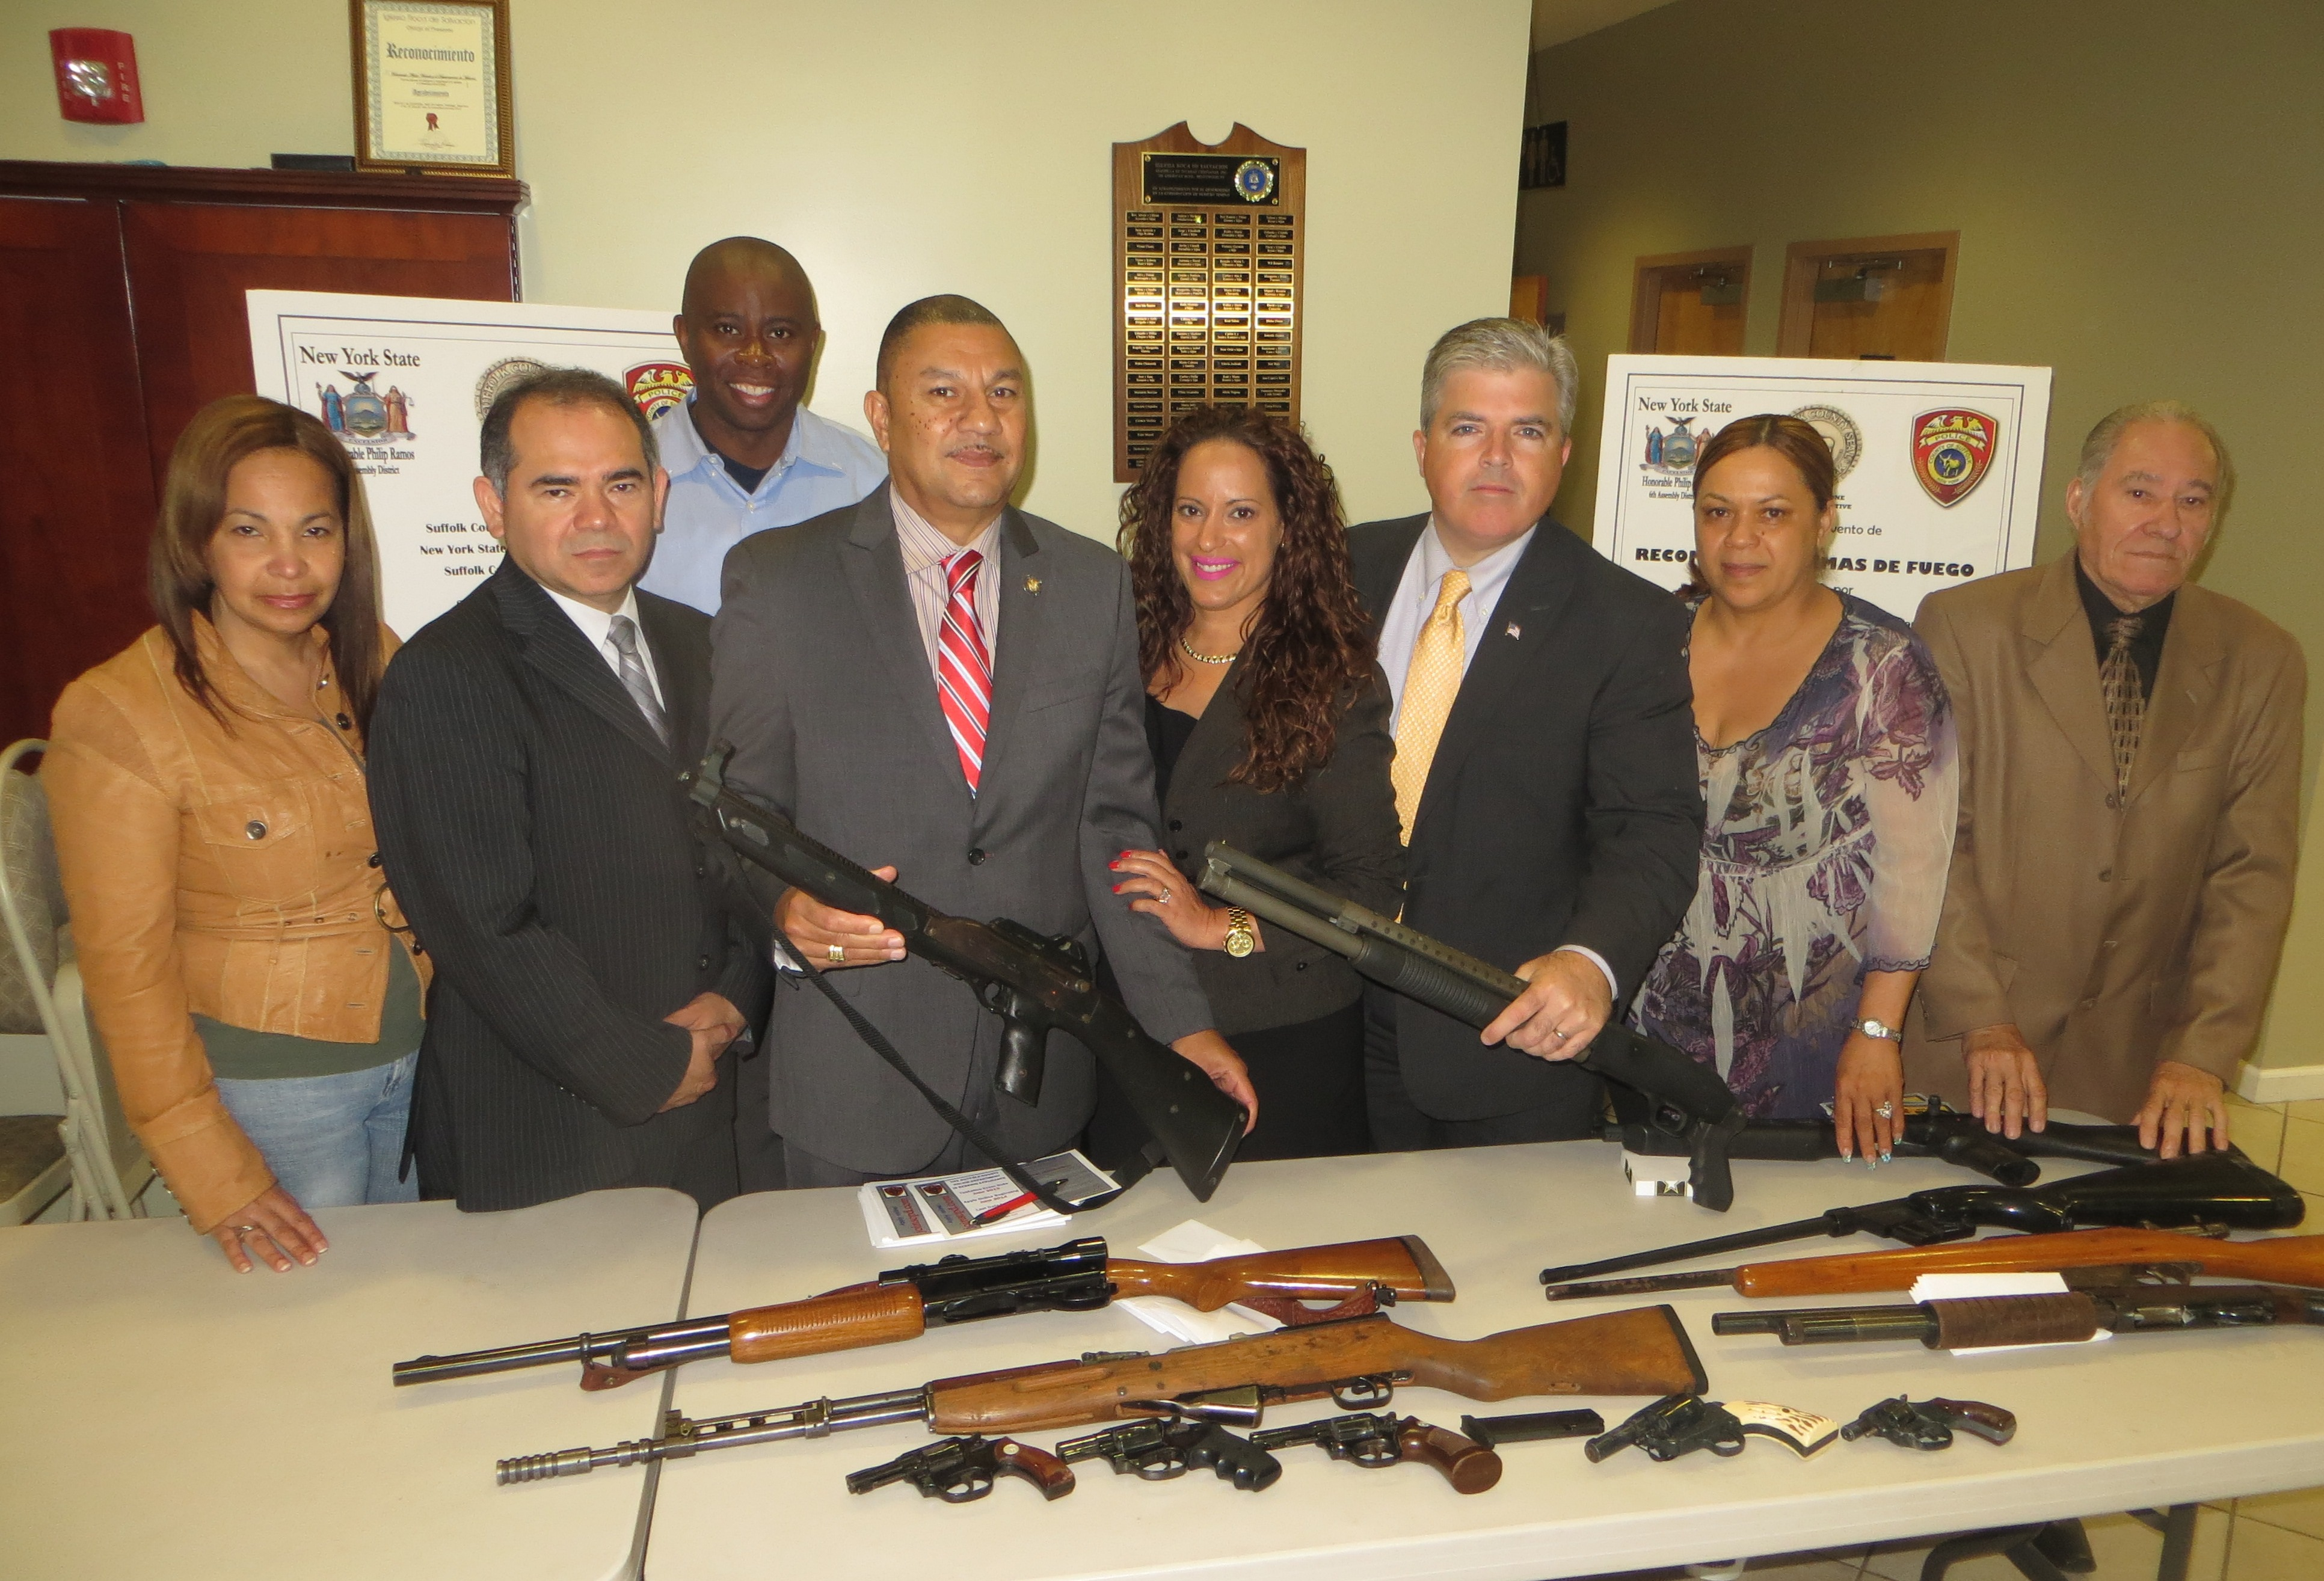 Assemblyman Phil Ramos co-hosted a gun buyback event in conjunction with Suffolk County Executive Steve Bellone, the Suffolk County Police Department and Suffolk County Crime Stoppers. The event took place in Brentwood and helped get numerous guns off the streets of Suffolk County.